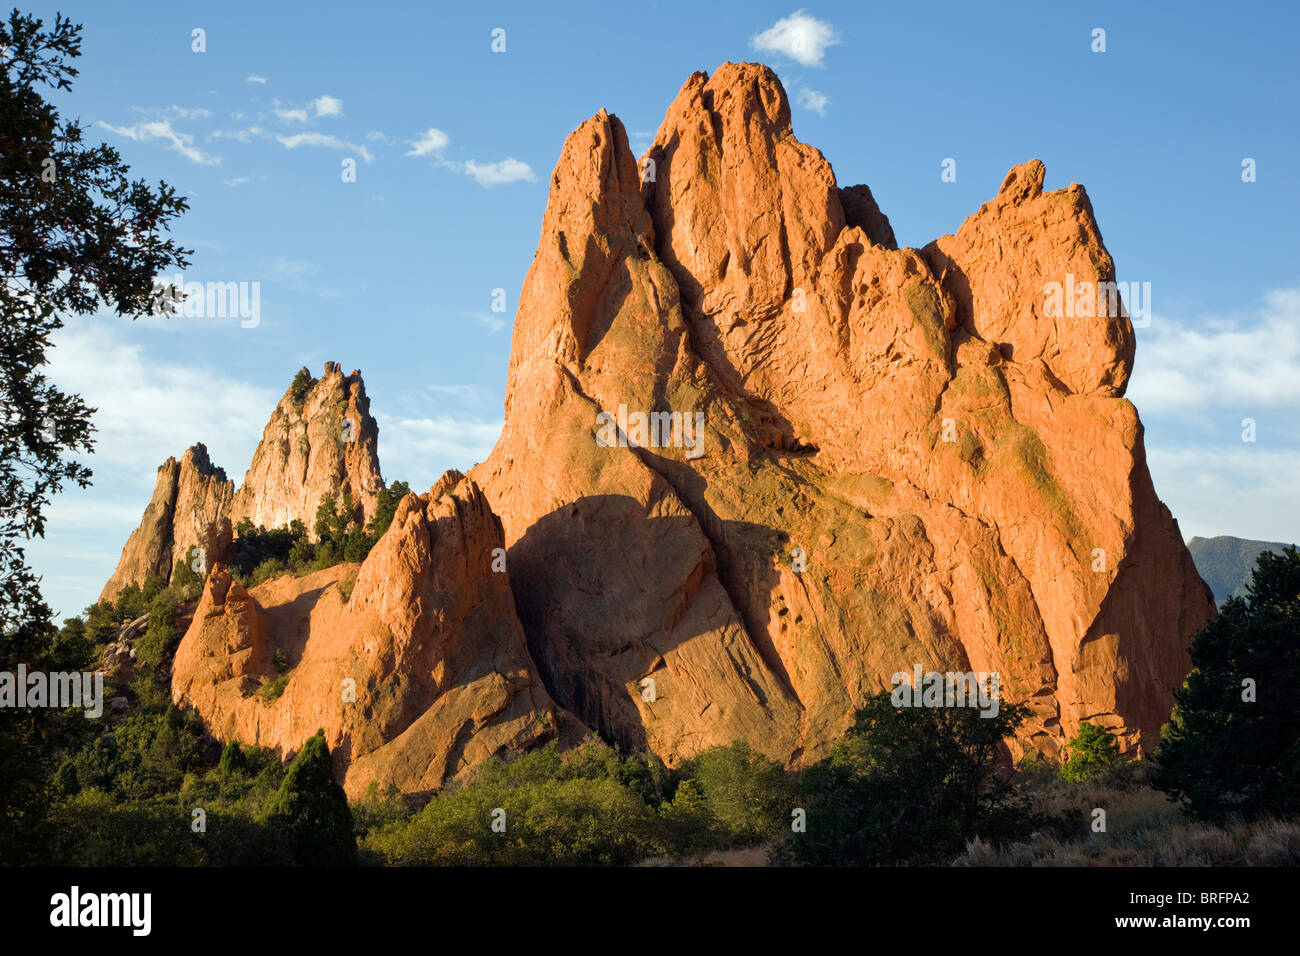 South Gateway Rock, Garden of the Gods.  Years of erosion create unique sandstone formations, Colorado Springs, - Stock Image